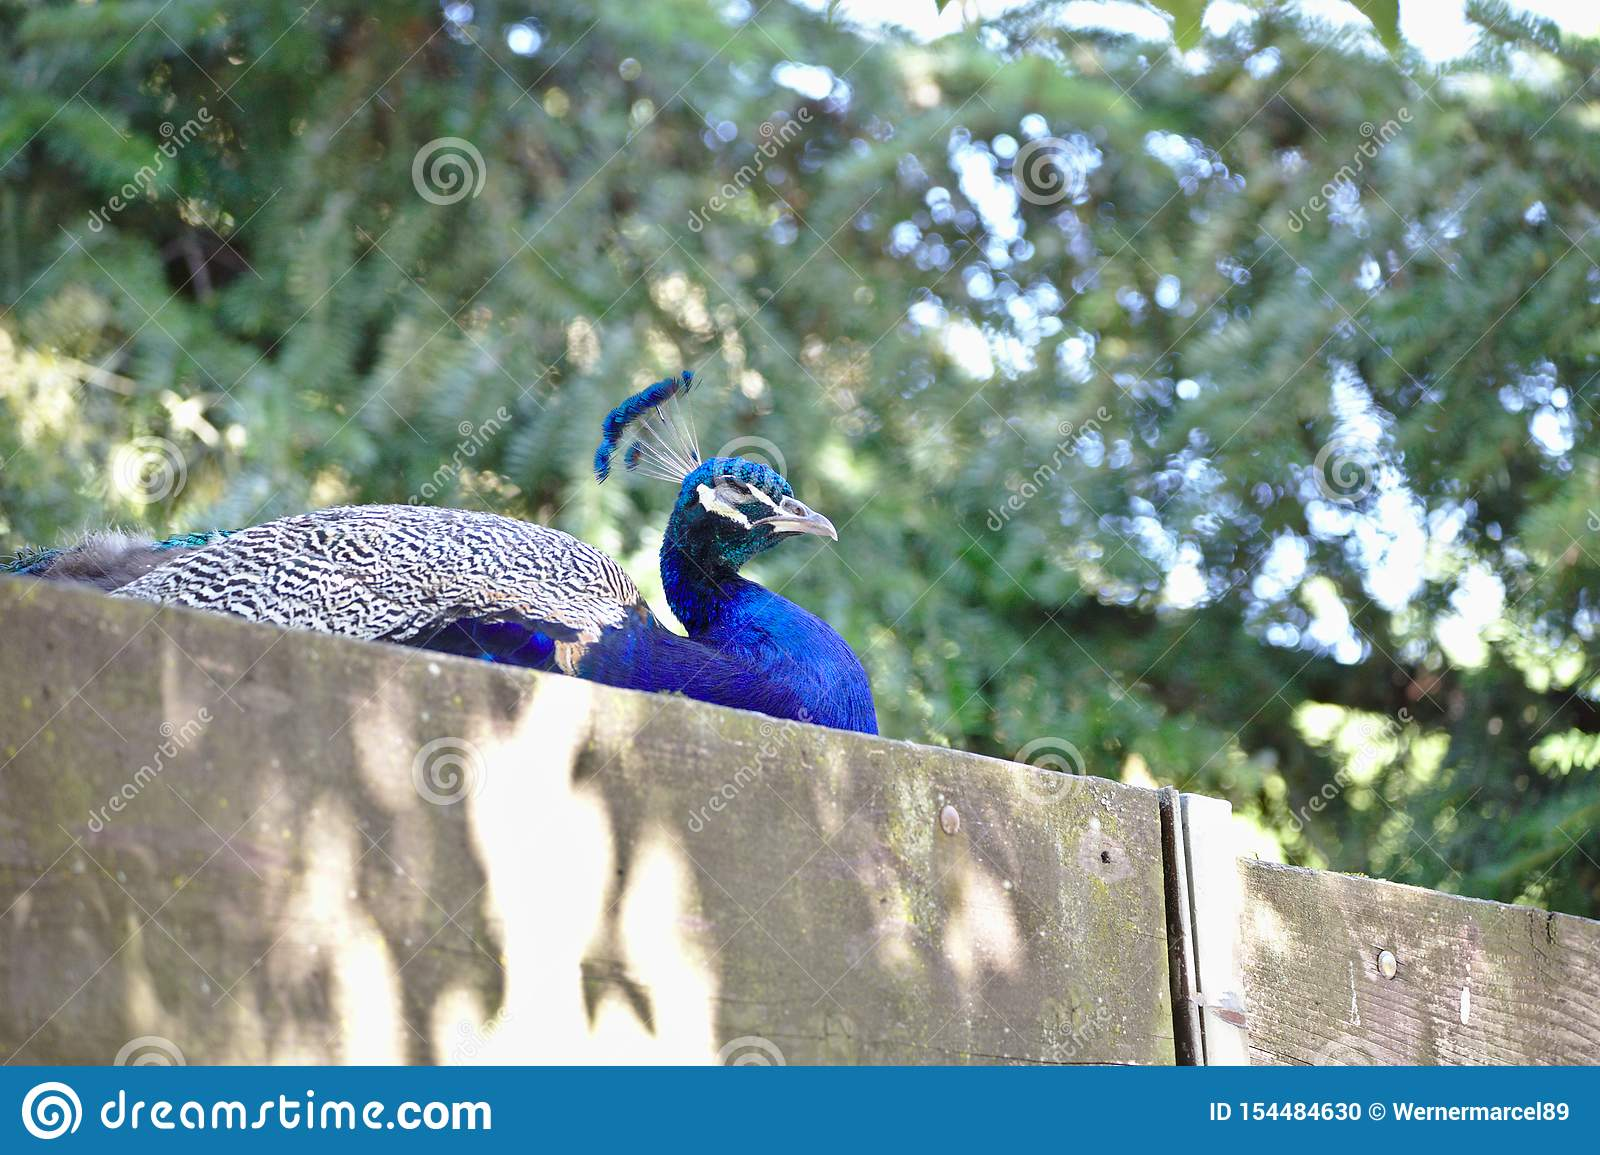 Close up view of The Indian peafowl or blue peafowl Pavo cristatus, a large and brightly coloured bird